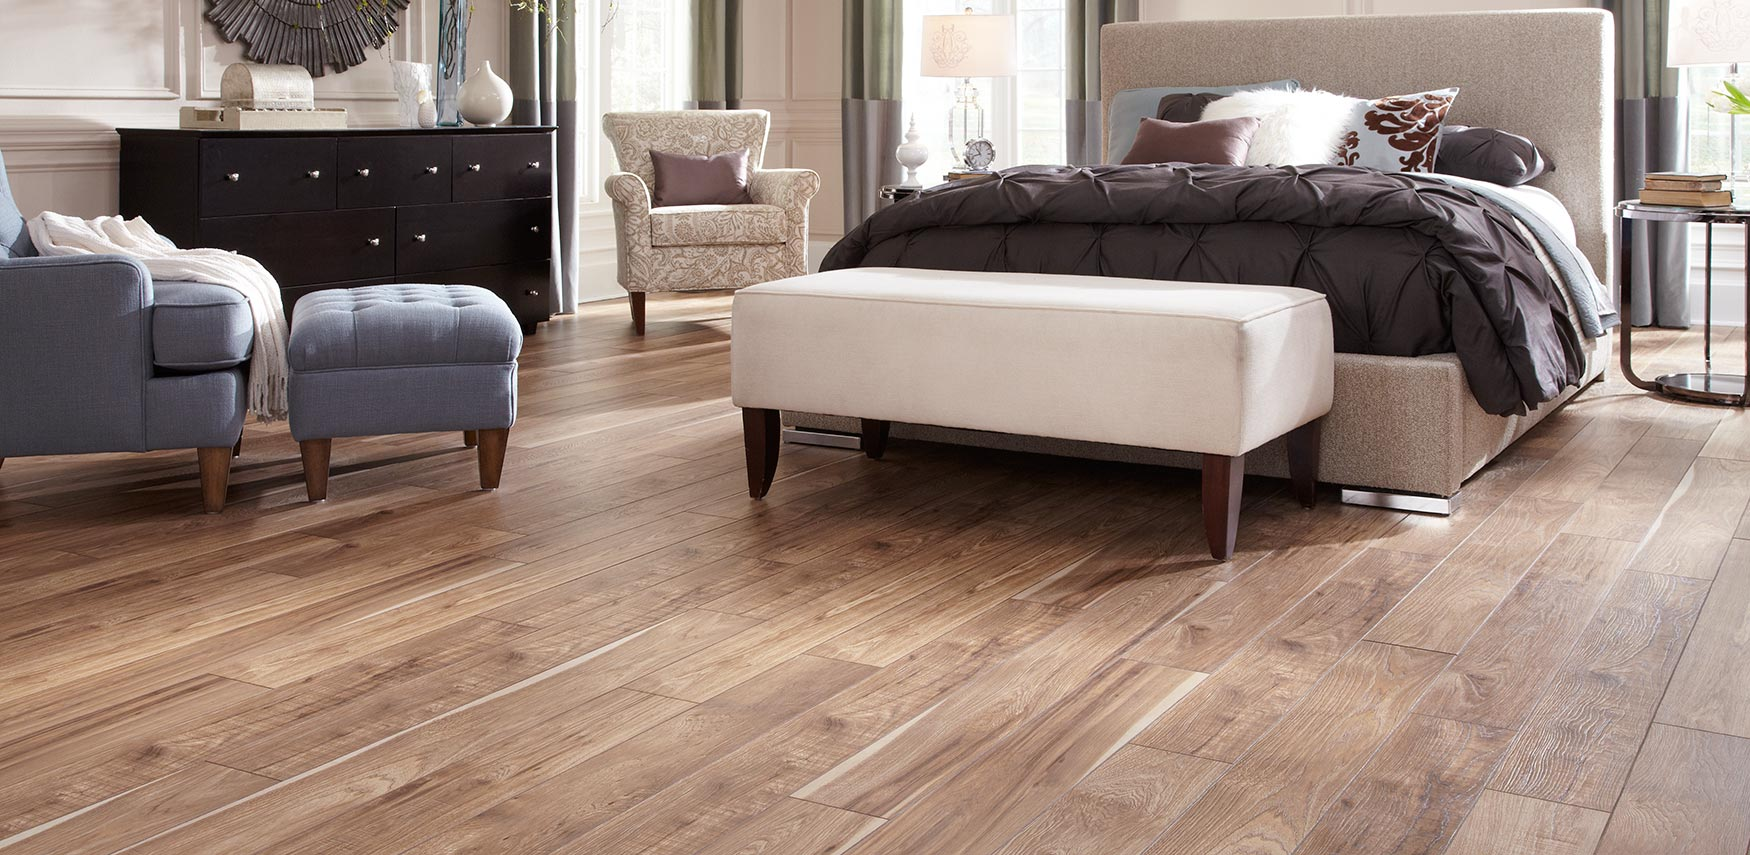 Luxury Laminate Flooring dark russet Laminate Flooring